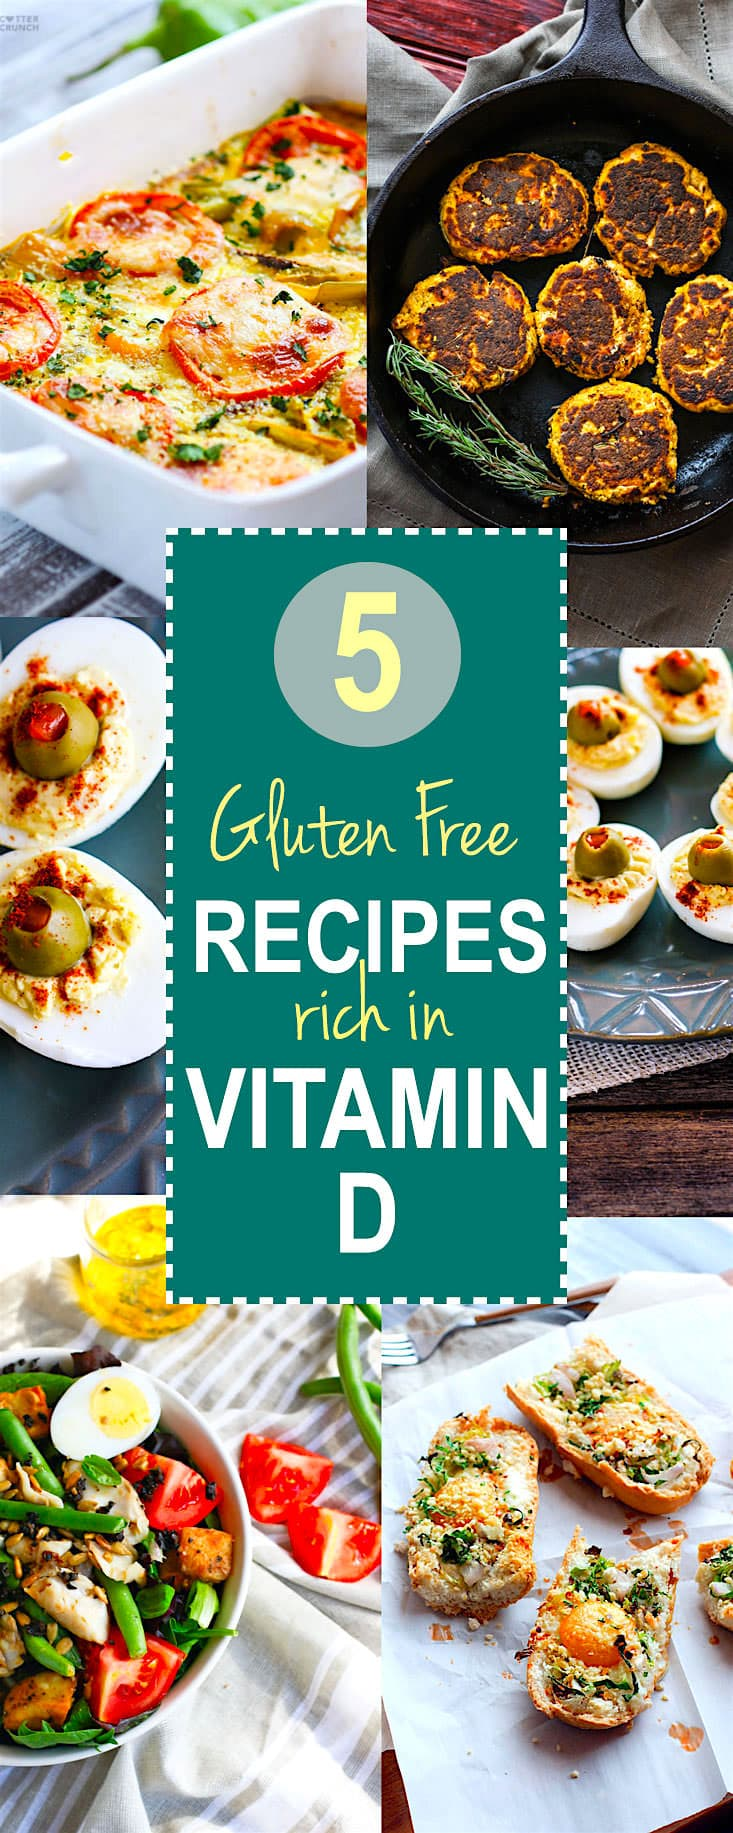 5 Gluten Free Recipes with Eggs to Boost your Vitamin D! Stay healthy this year with these nourishing gluten free Vitamin D rich recipes. Easy to make, healthy, and family approved!